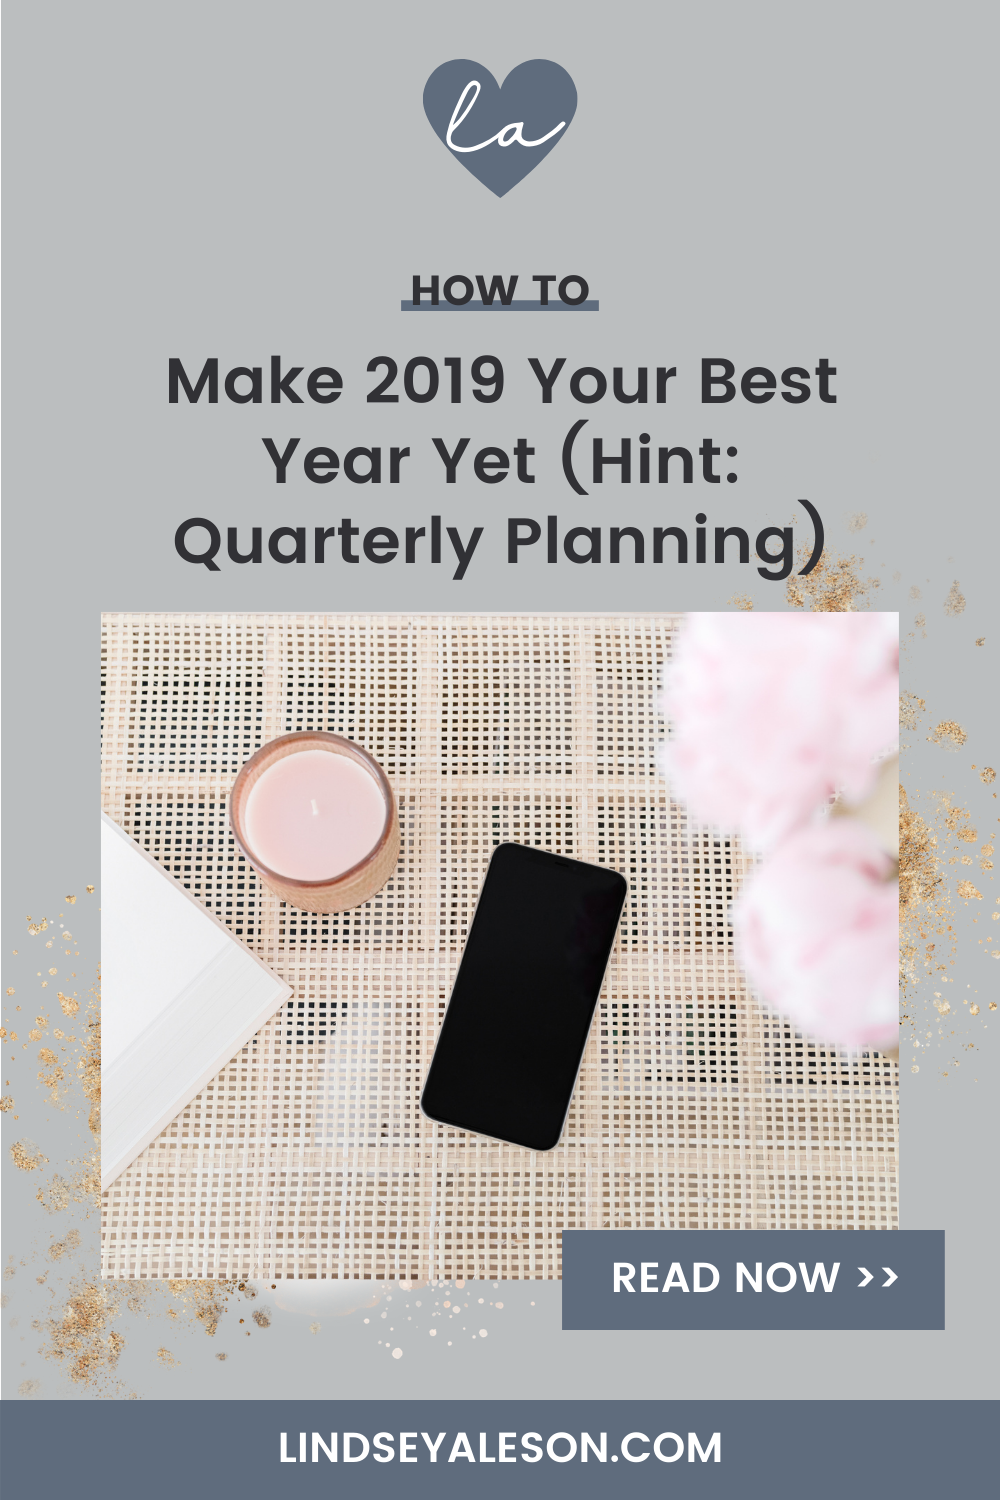 How to Make 2019 Your Best Year Yet (Hint: Quarterly Planning)